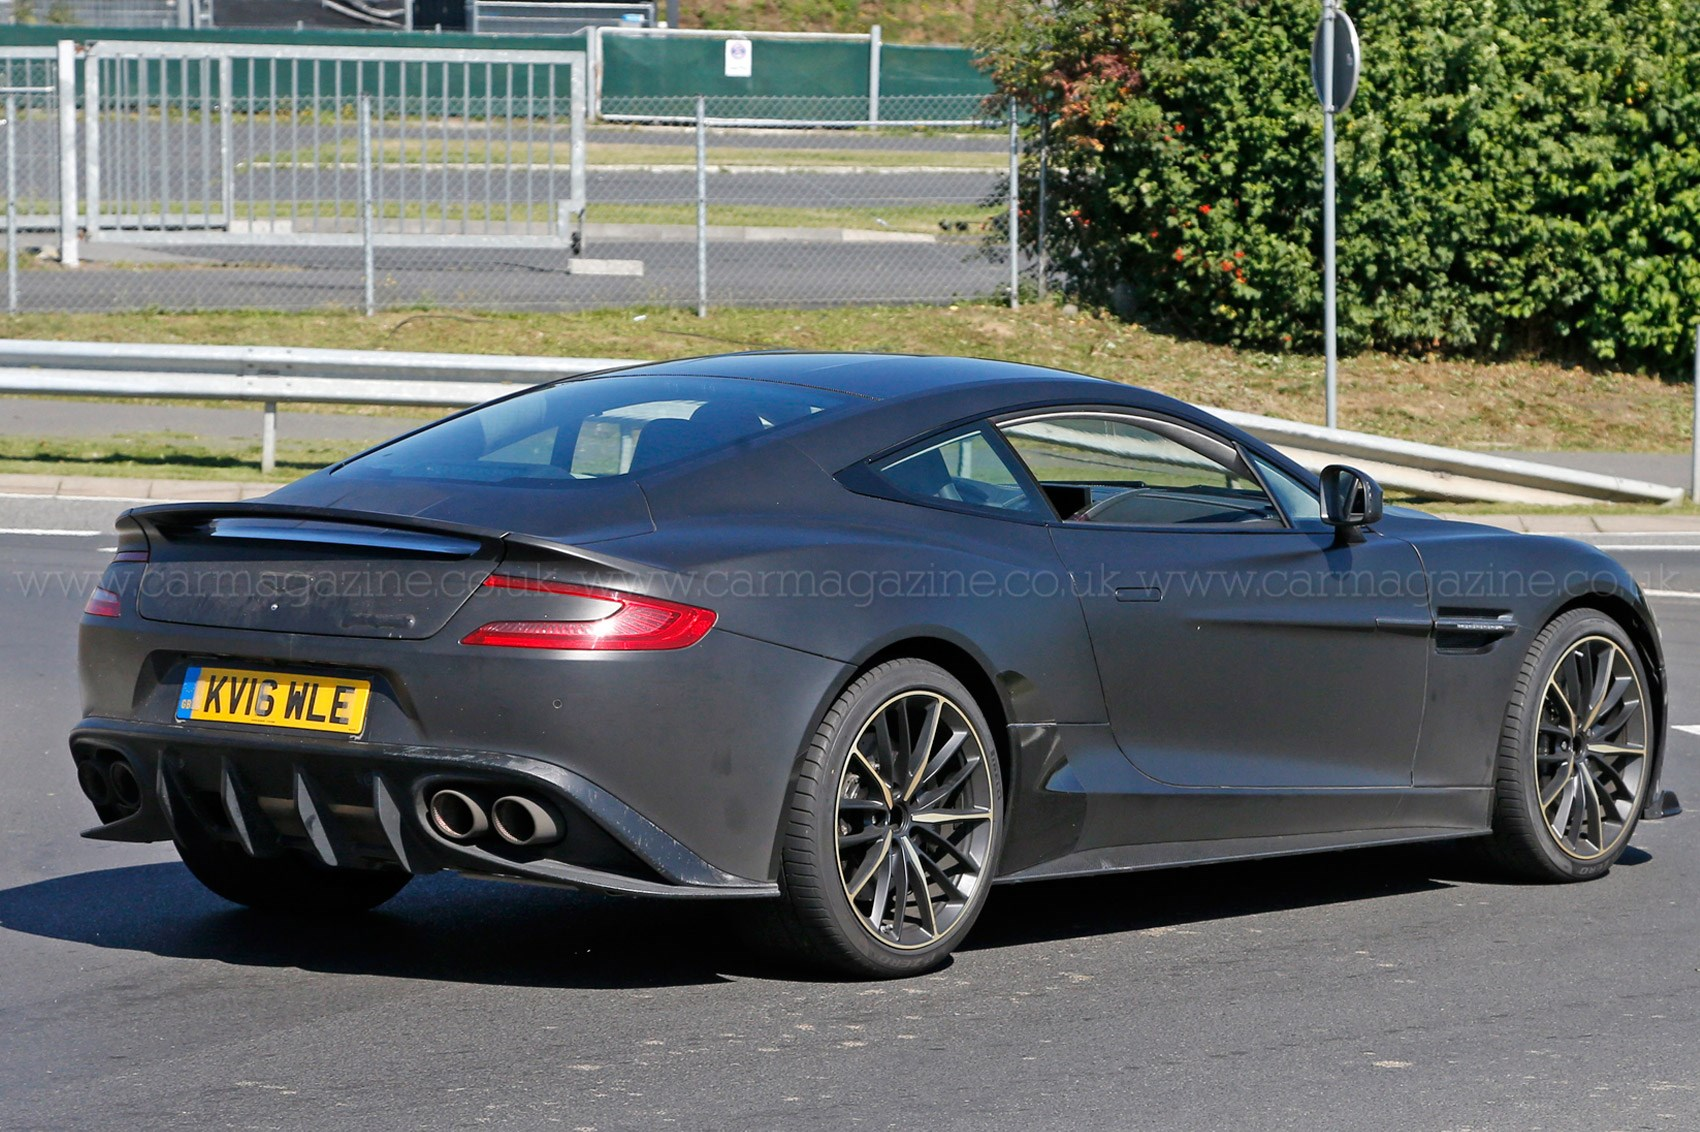 Tried And Tested Aston Martin Vanquish Zagato Prototype Heads To - Aston martin vanquish zagato